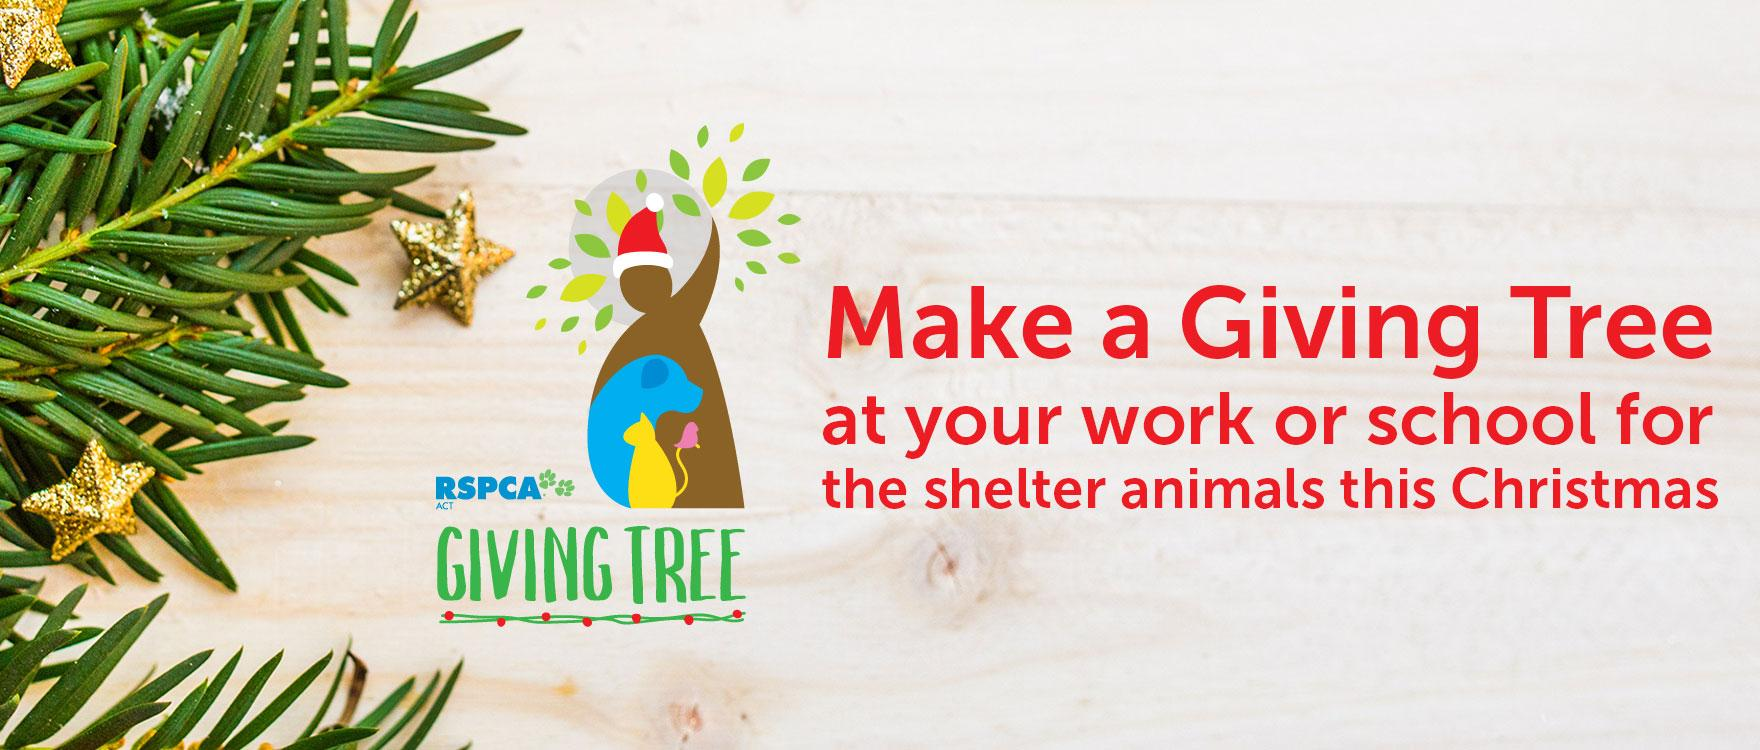 Giving Tree - help make shelter animals feel loved this Christmas